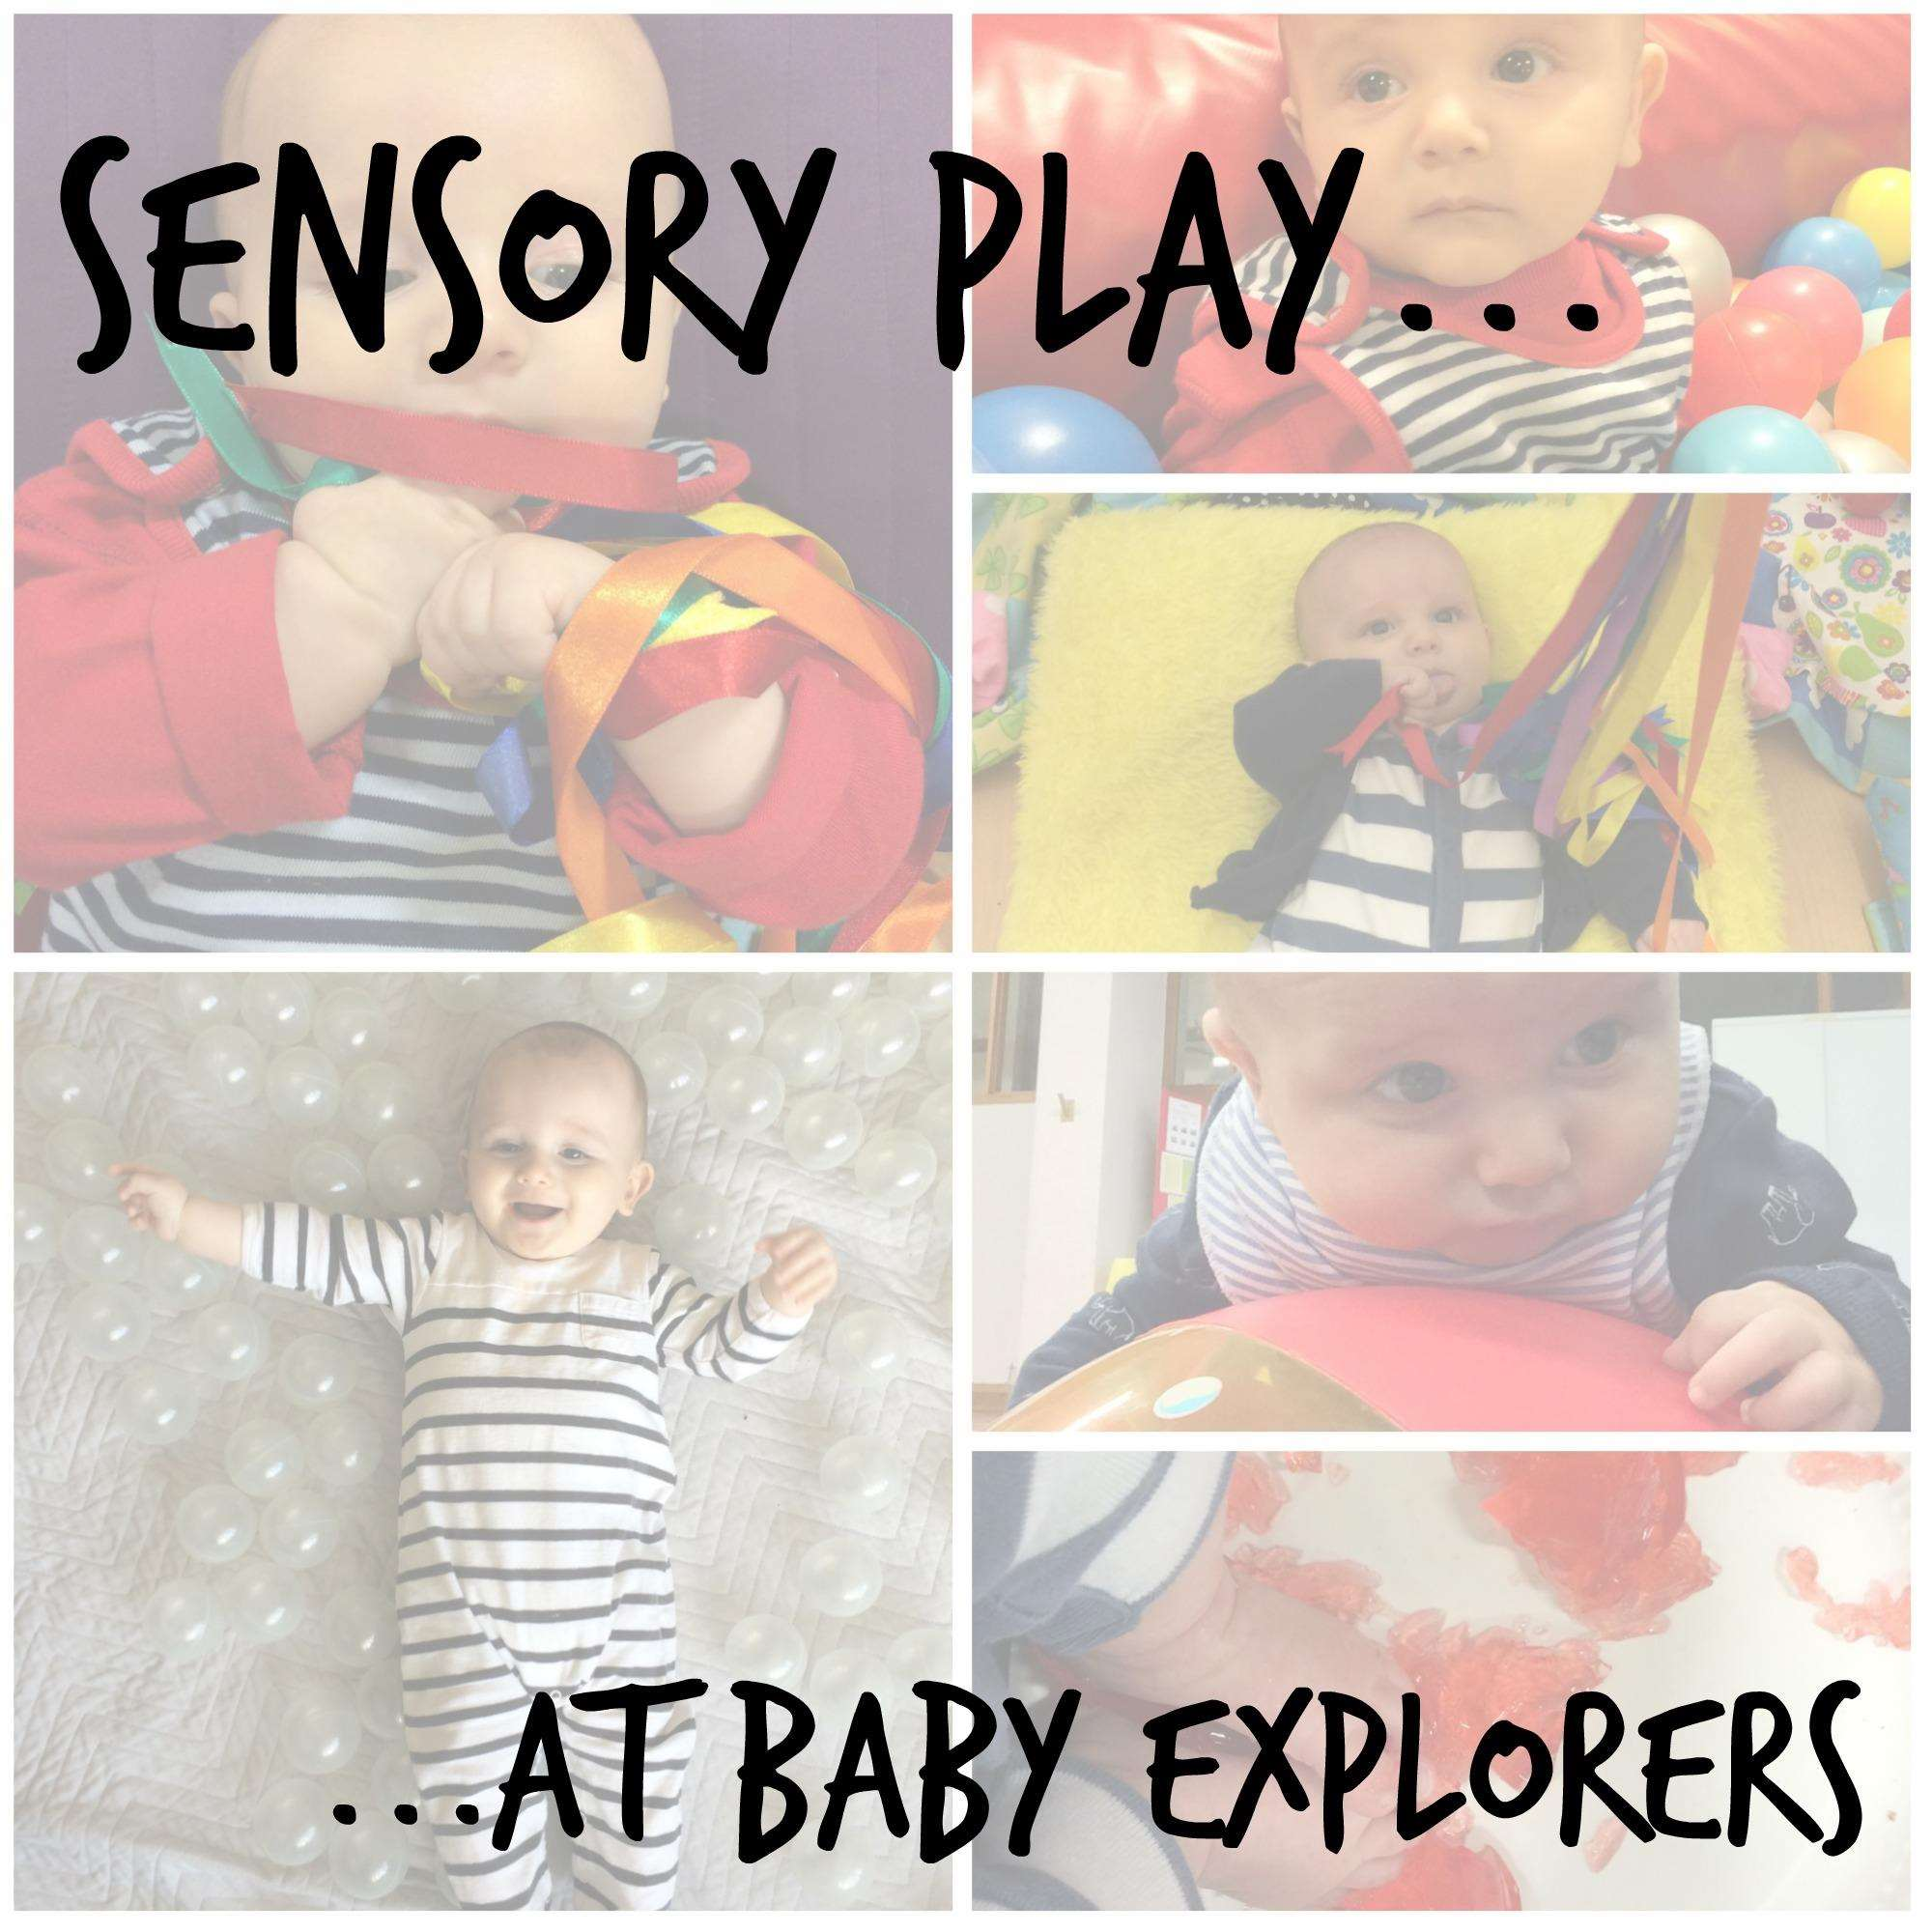 Sensory Play at Baby Explorers, Sensory Play BE%, new-dad%